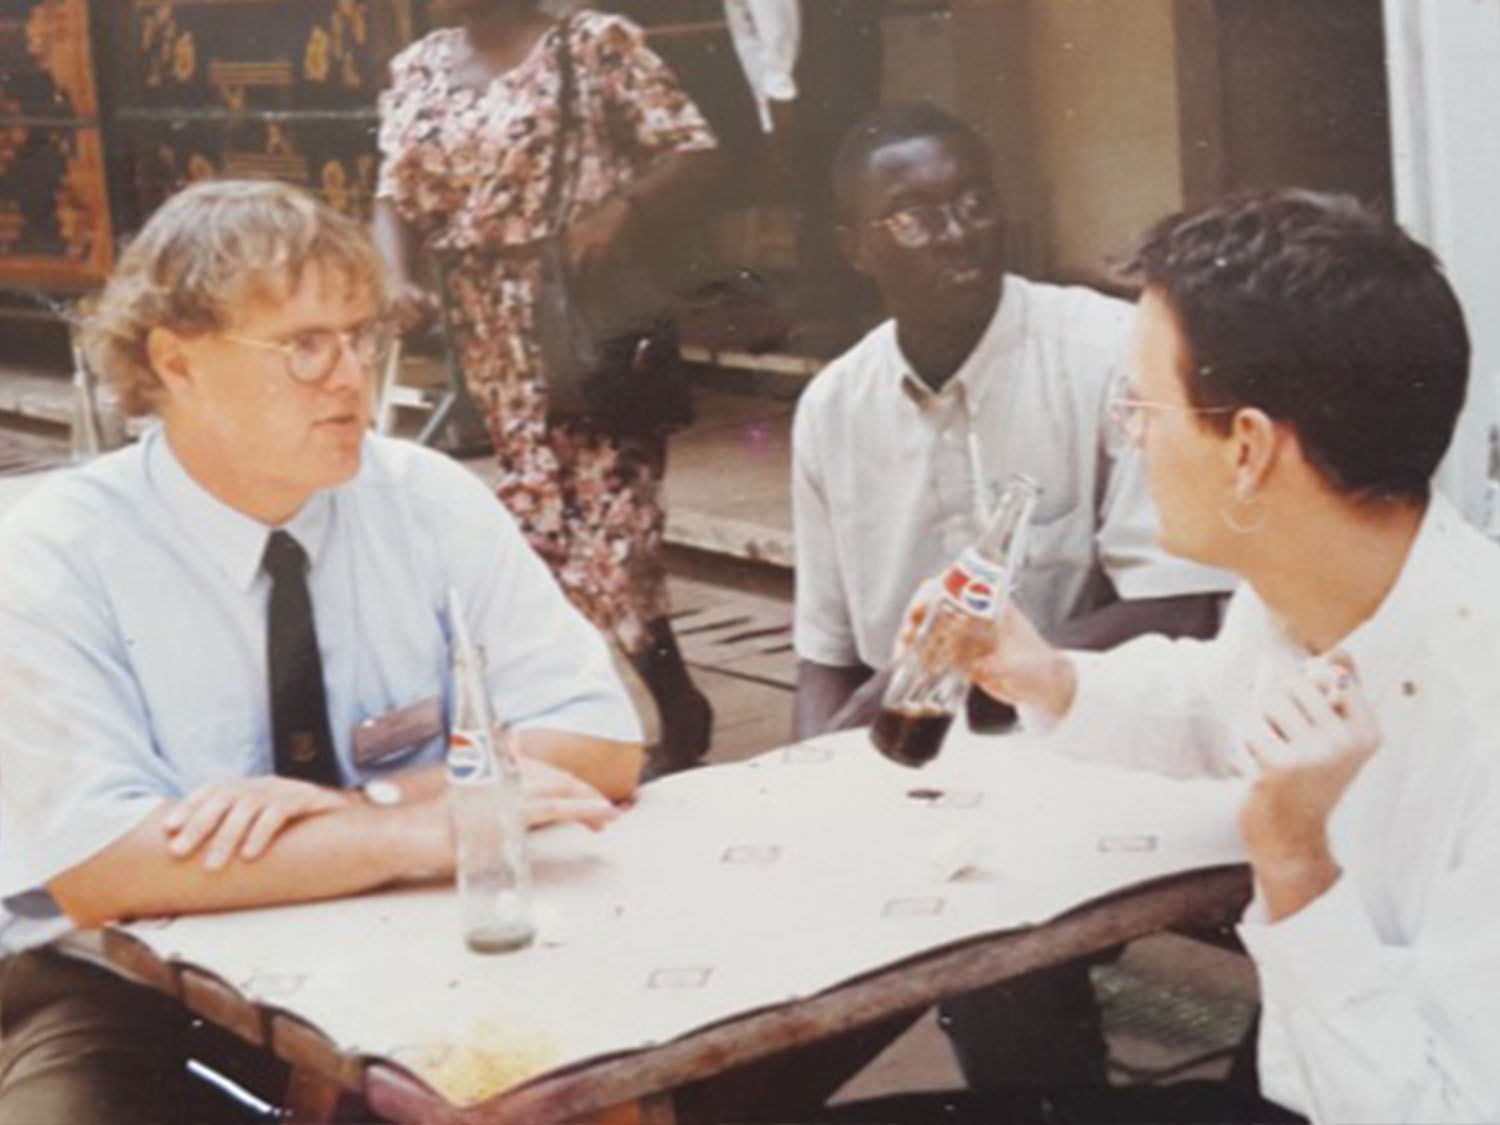 Cheikh Mbow with Danish friends Thomas Theis Nielsen (right) and Lars Nielsen (left) in Ghana 1998. Photo: Cheikh Mbow curtesy.